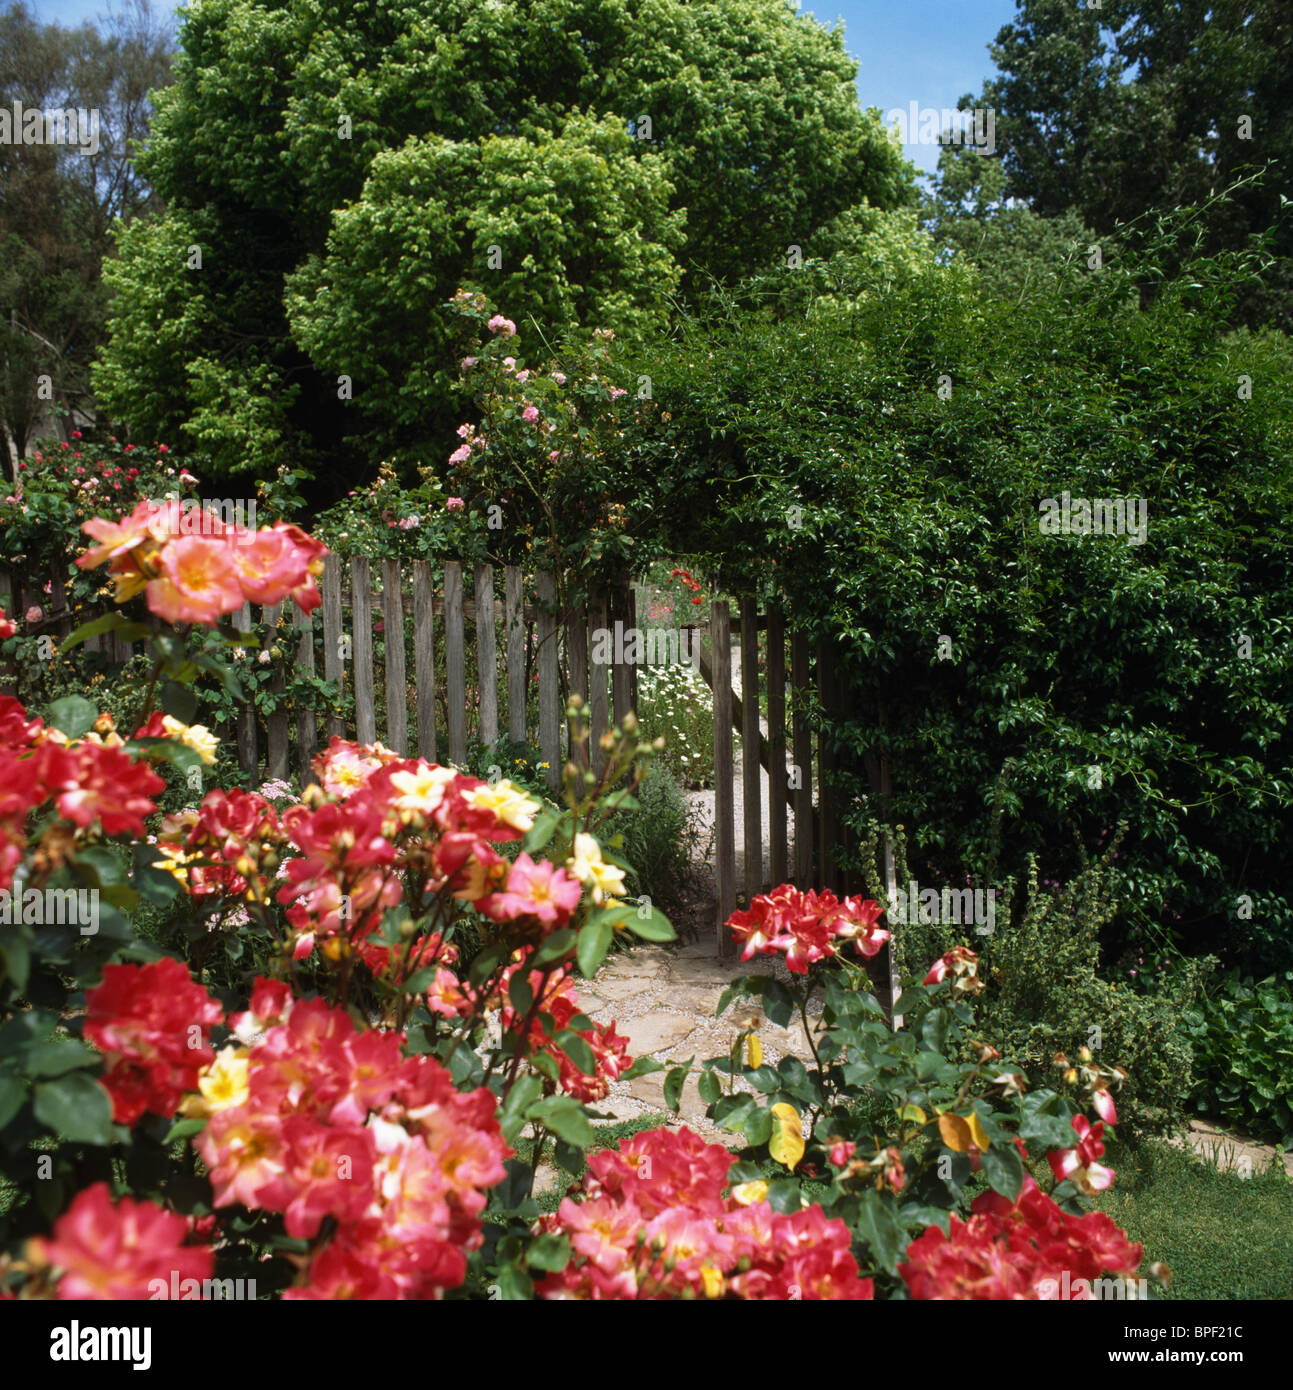 Red roses growing in border in sunny country garden with wooden red roses growing in border in sunny country garden with wooden picket fence and tall trees baanklon Choice Image